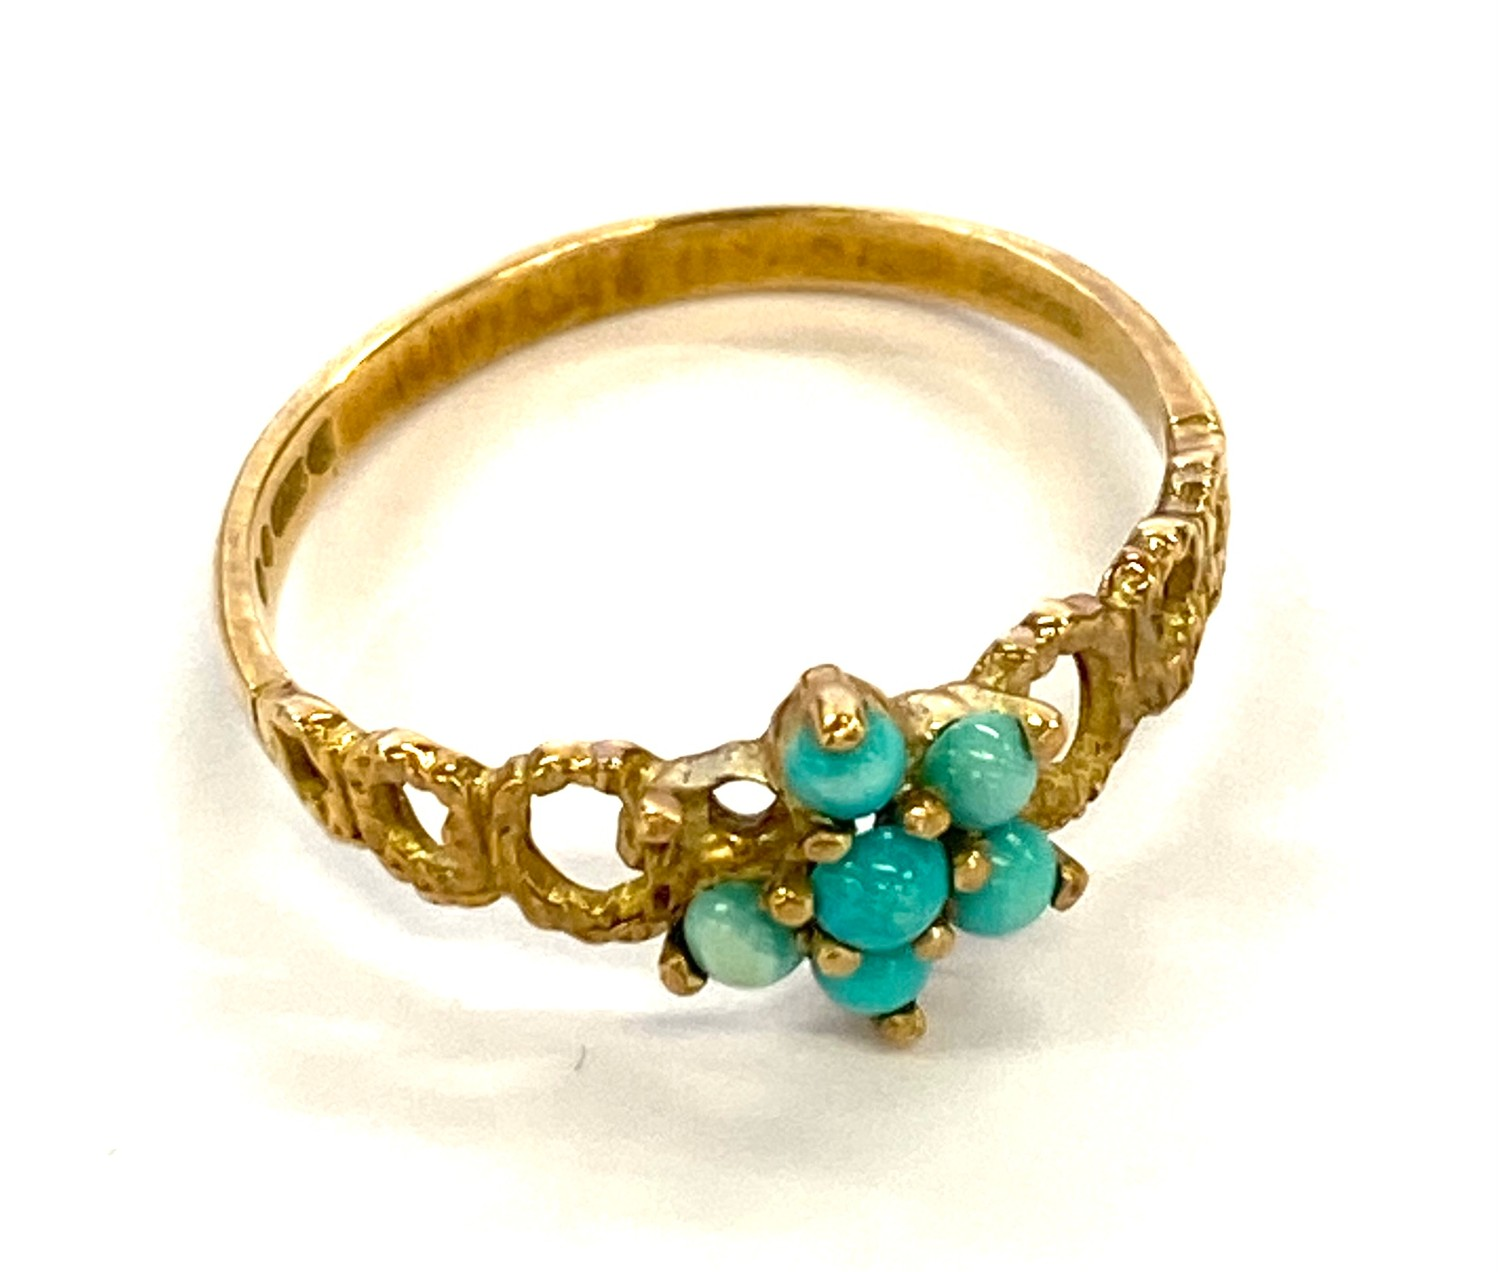 vintage 9ct gold turquoise set ring with textured design, missing stone